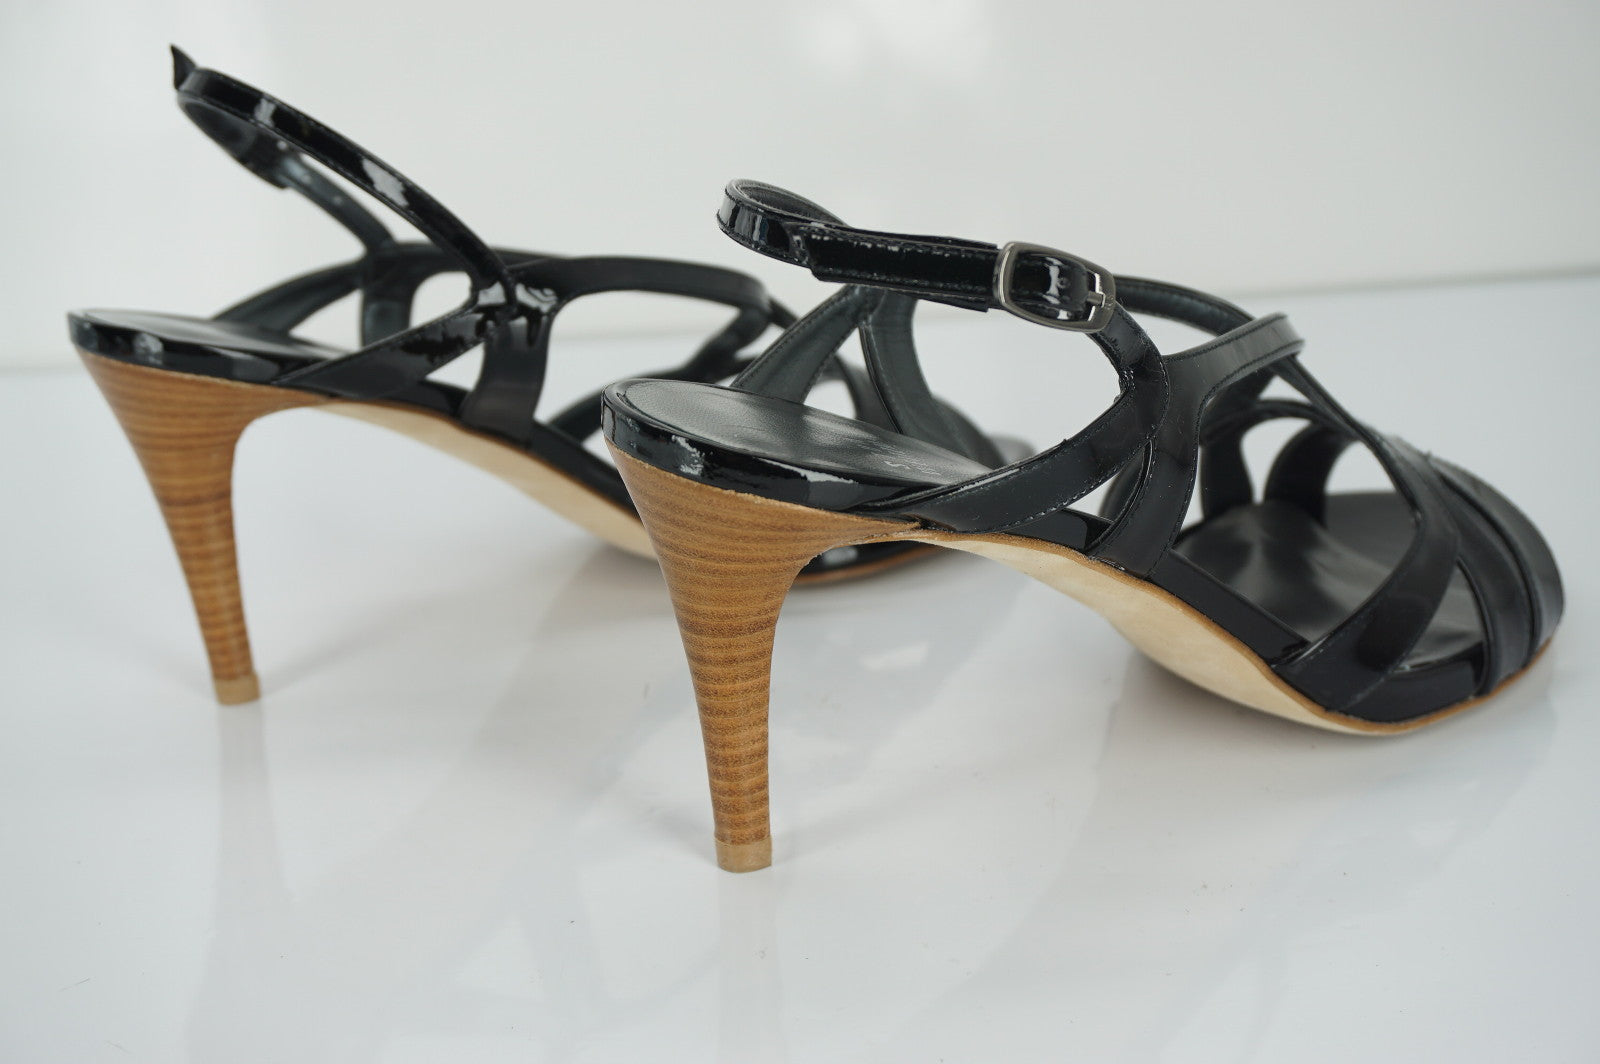 Stuart Weitzman Black Patent Leather Operetta Strappy Sandals Size 8 NIB $375 Sz